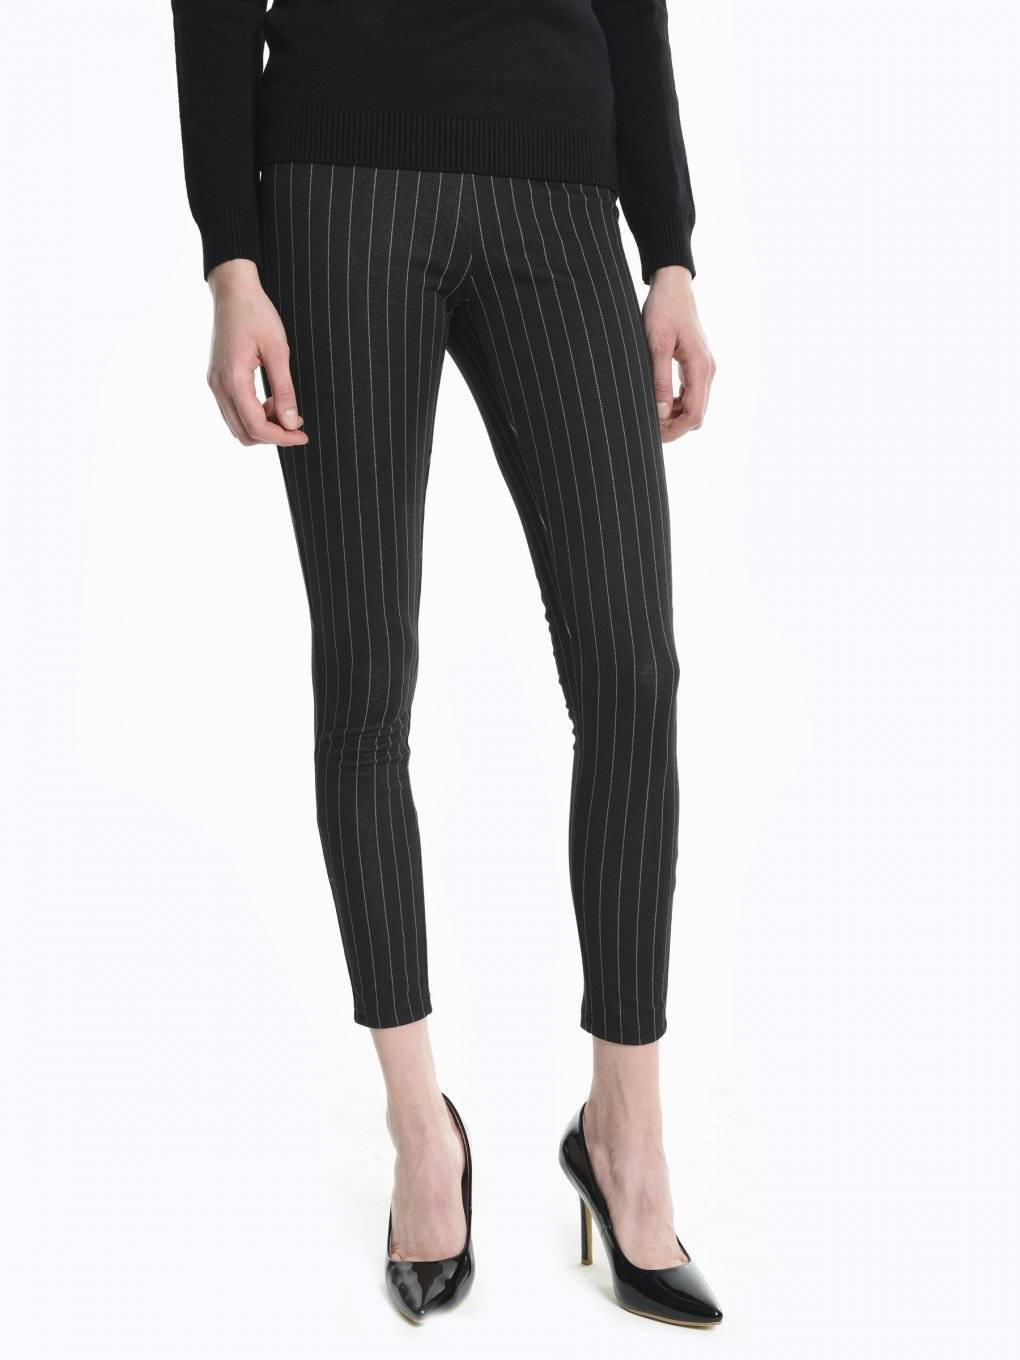 Leggings with white stripes